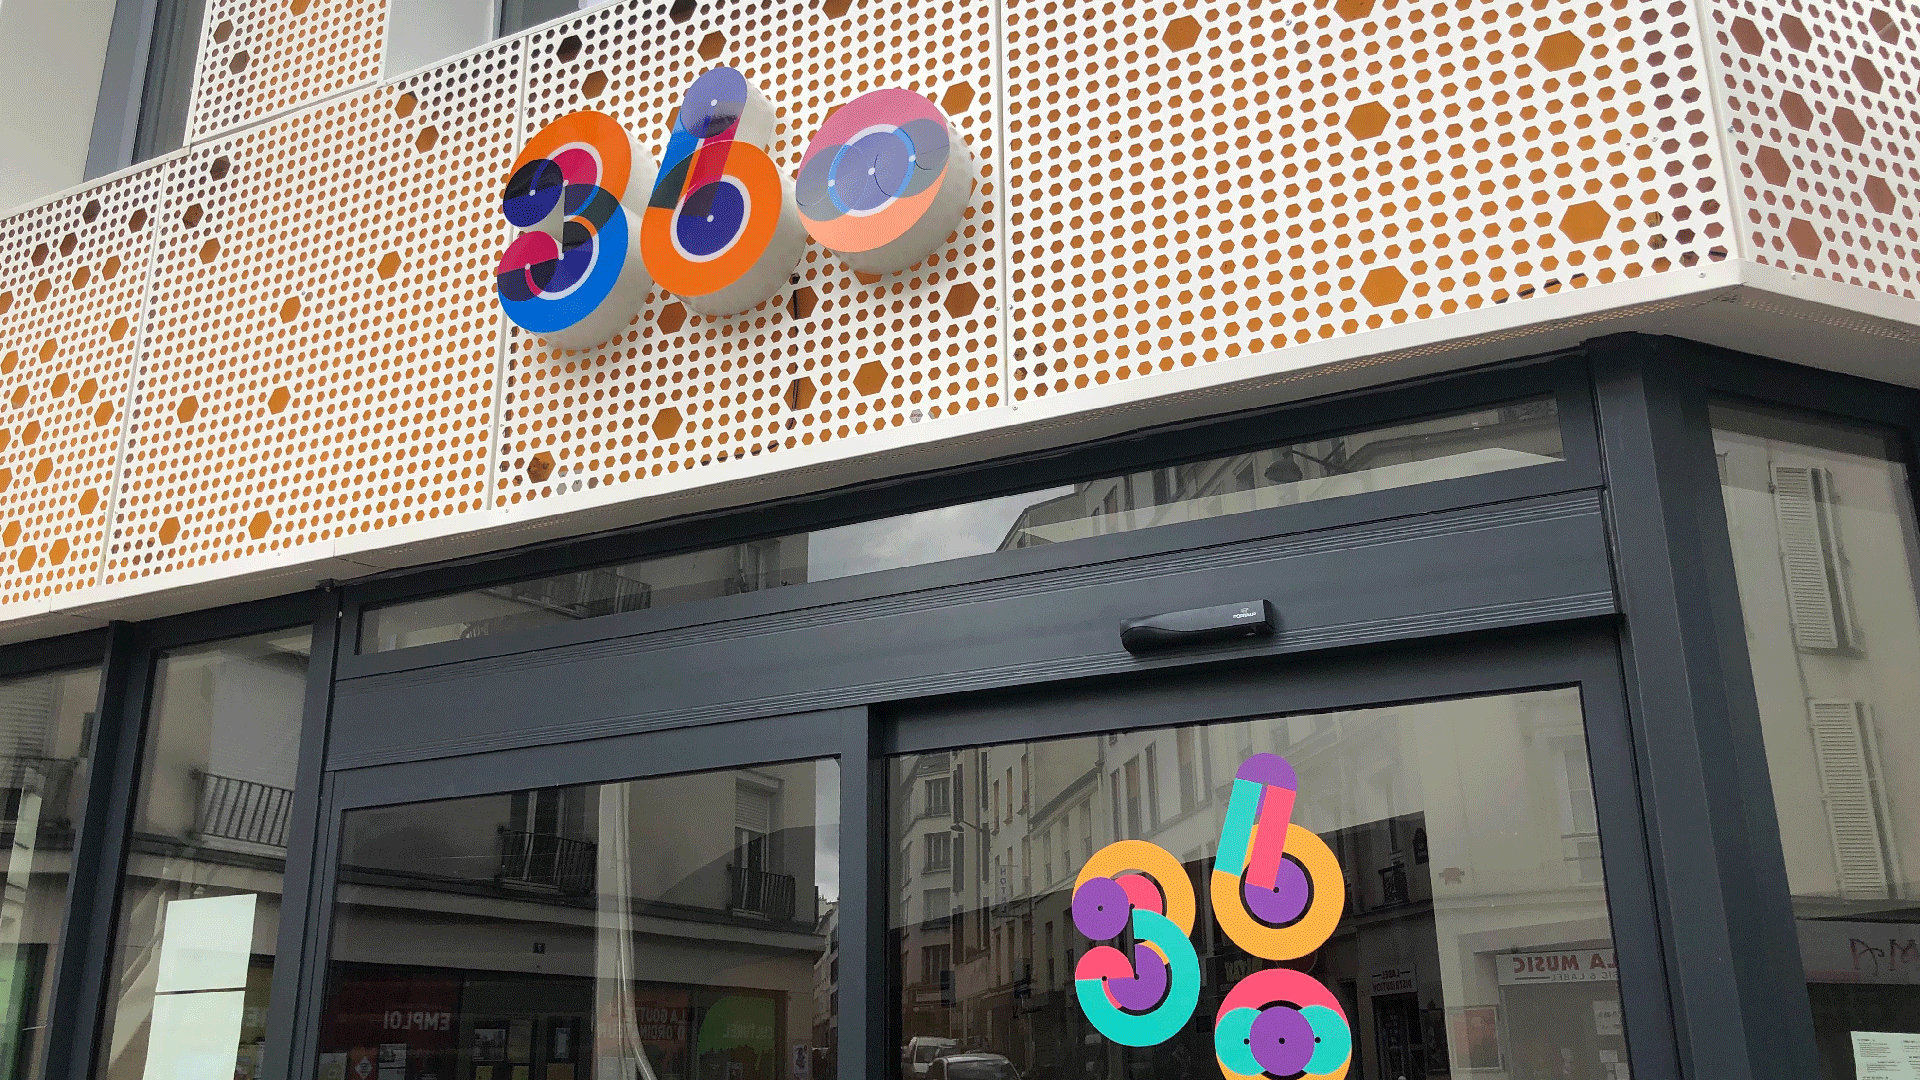 The 360 Music Factory - Paris